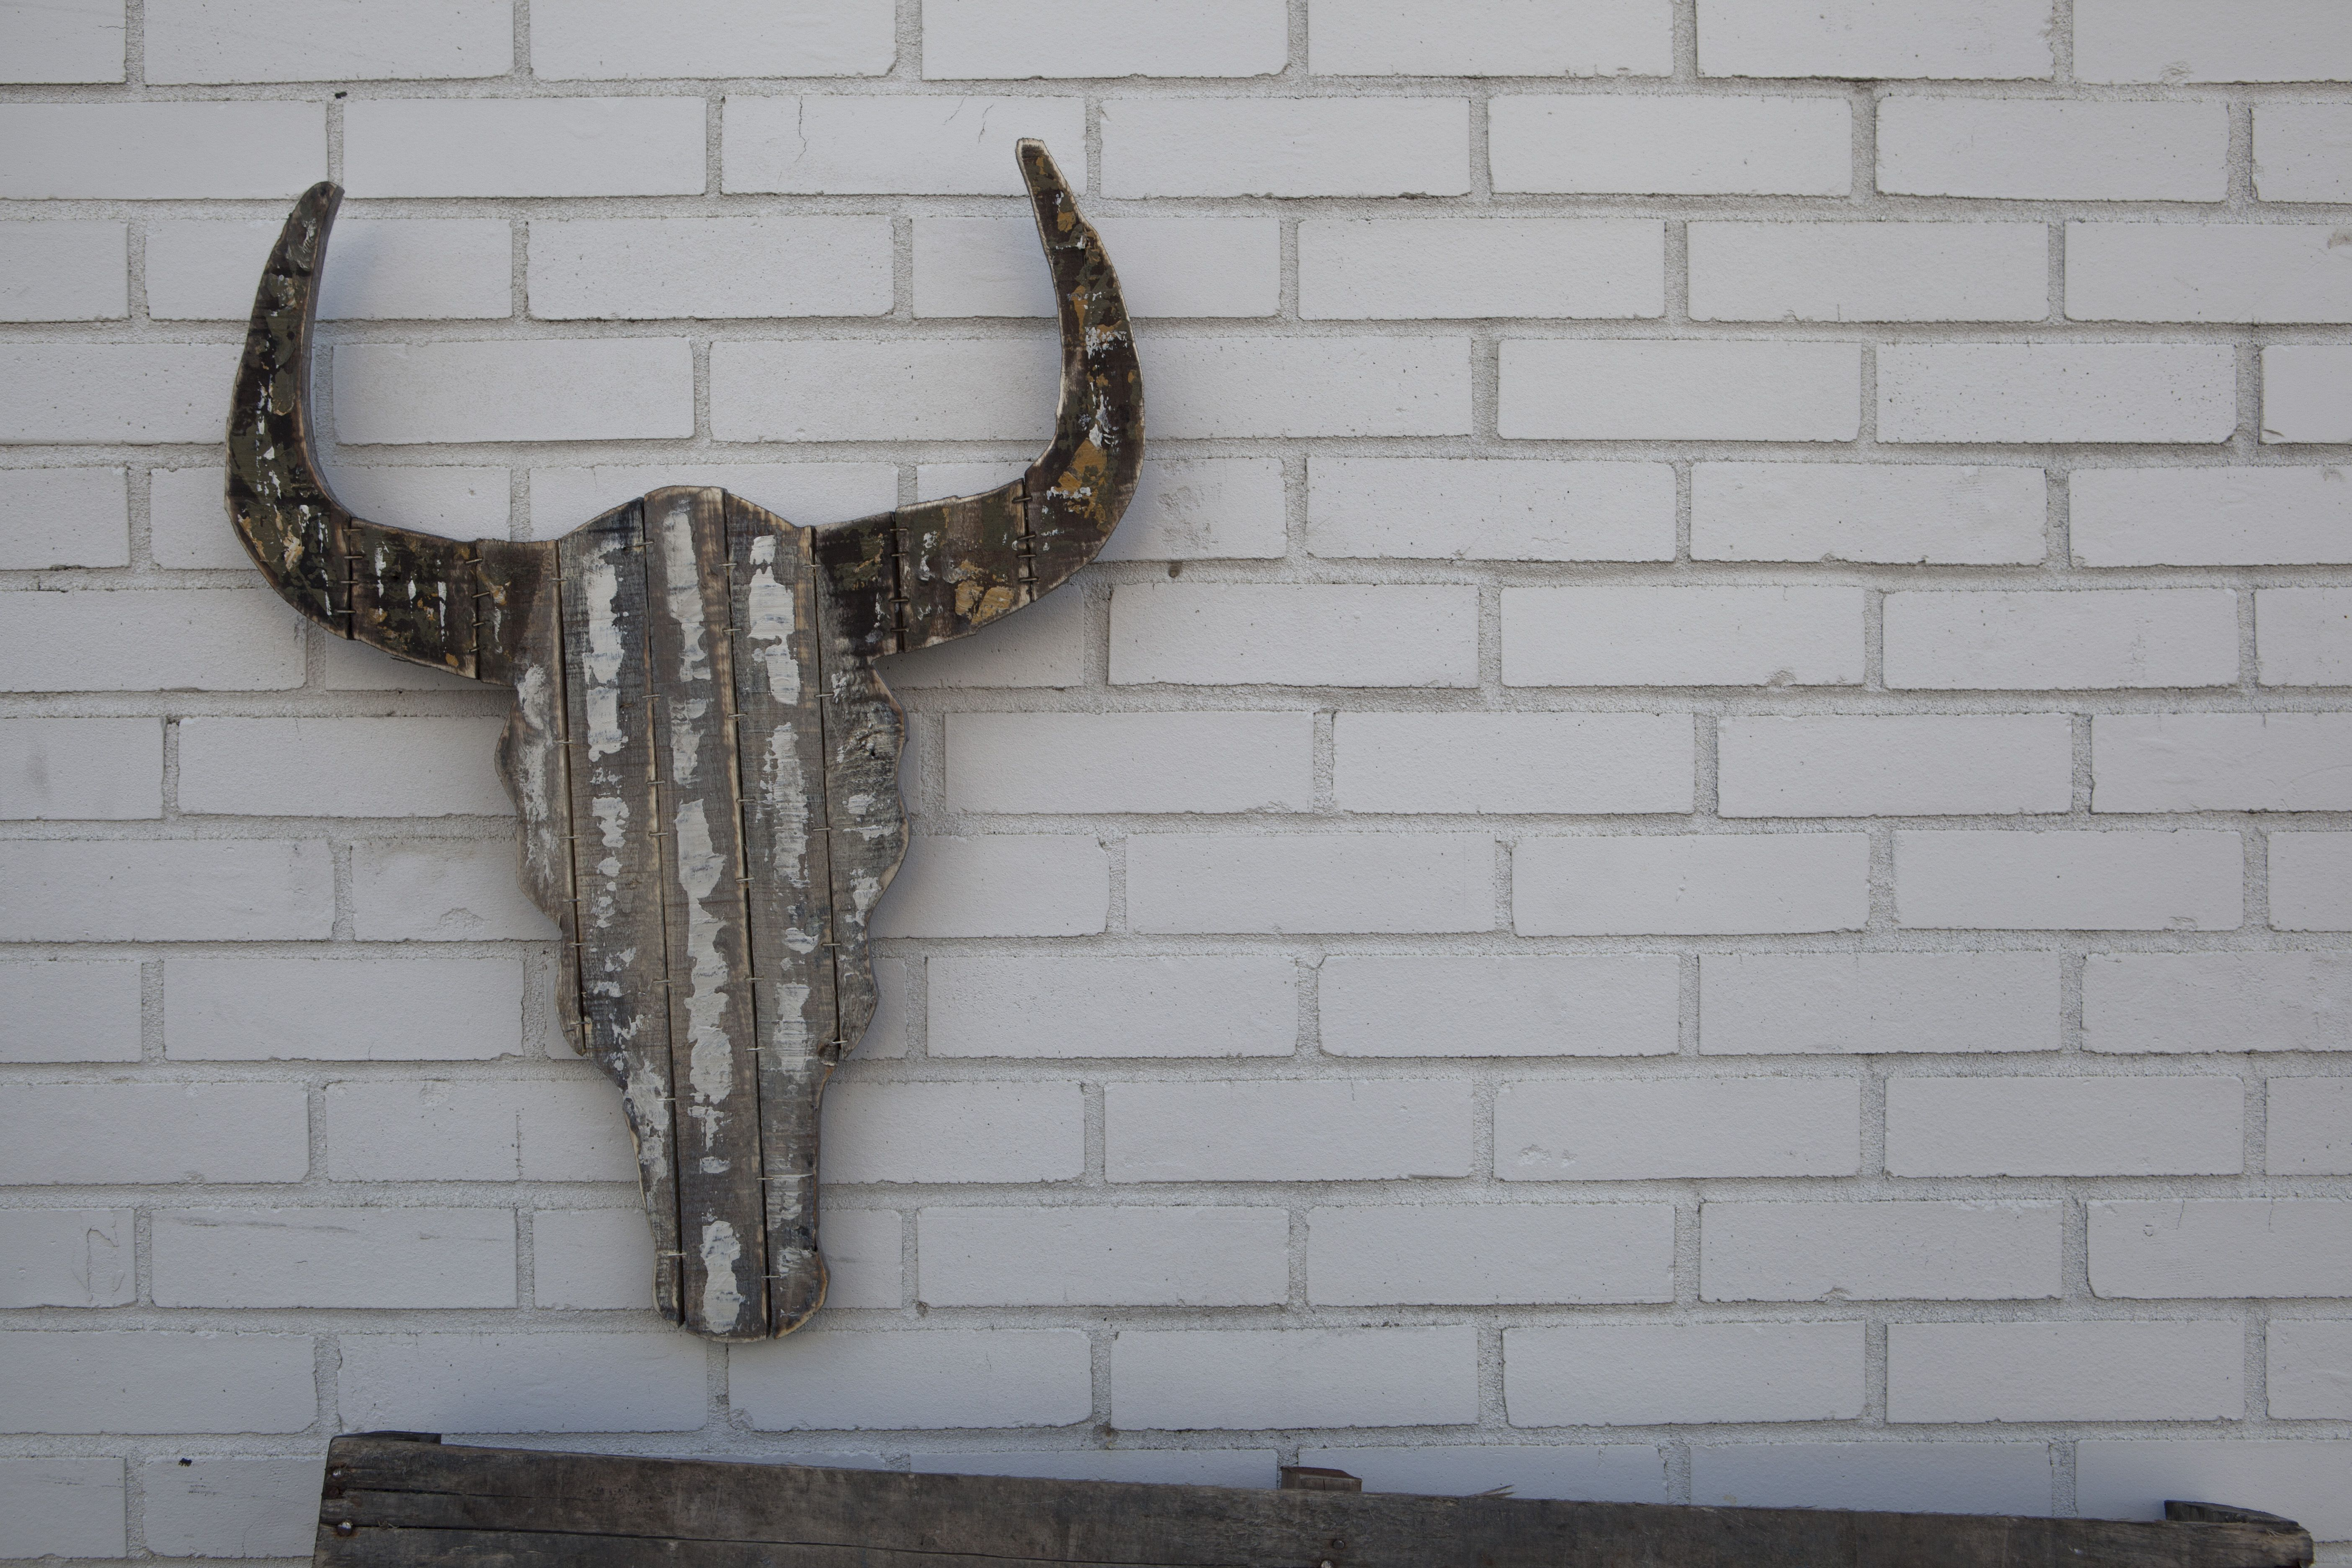 Wall Art I Could Do This Out Of Corrugated Metal Too Sheet Metal Art Metal Tree Corrugated Metal